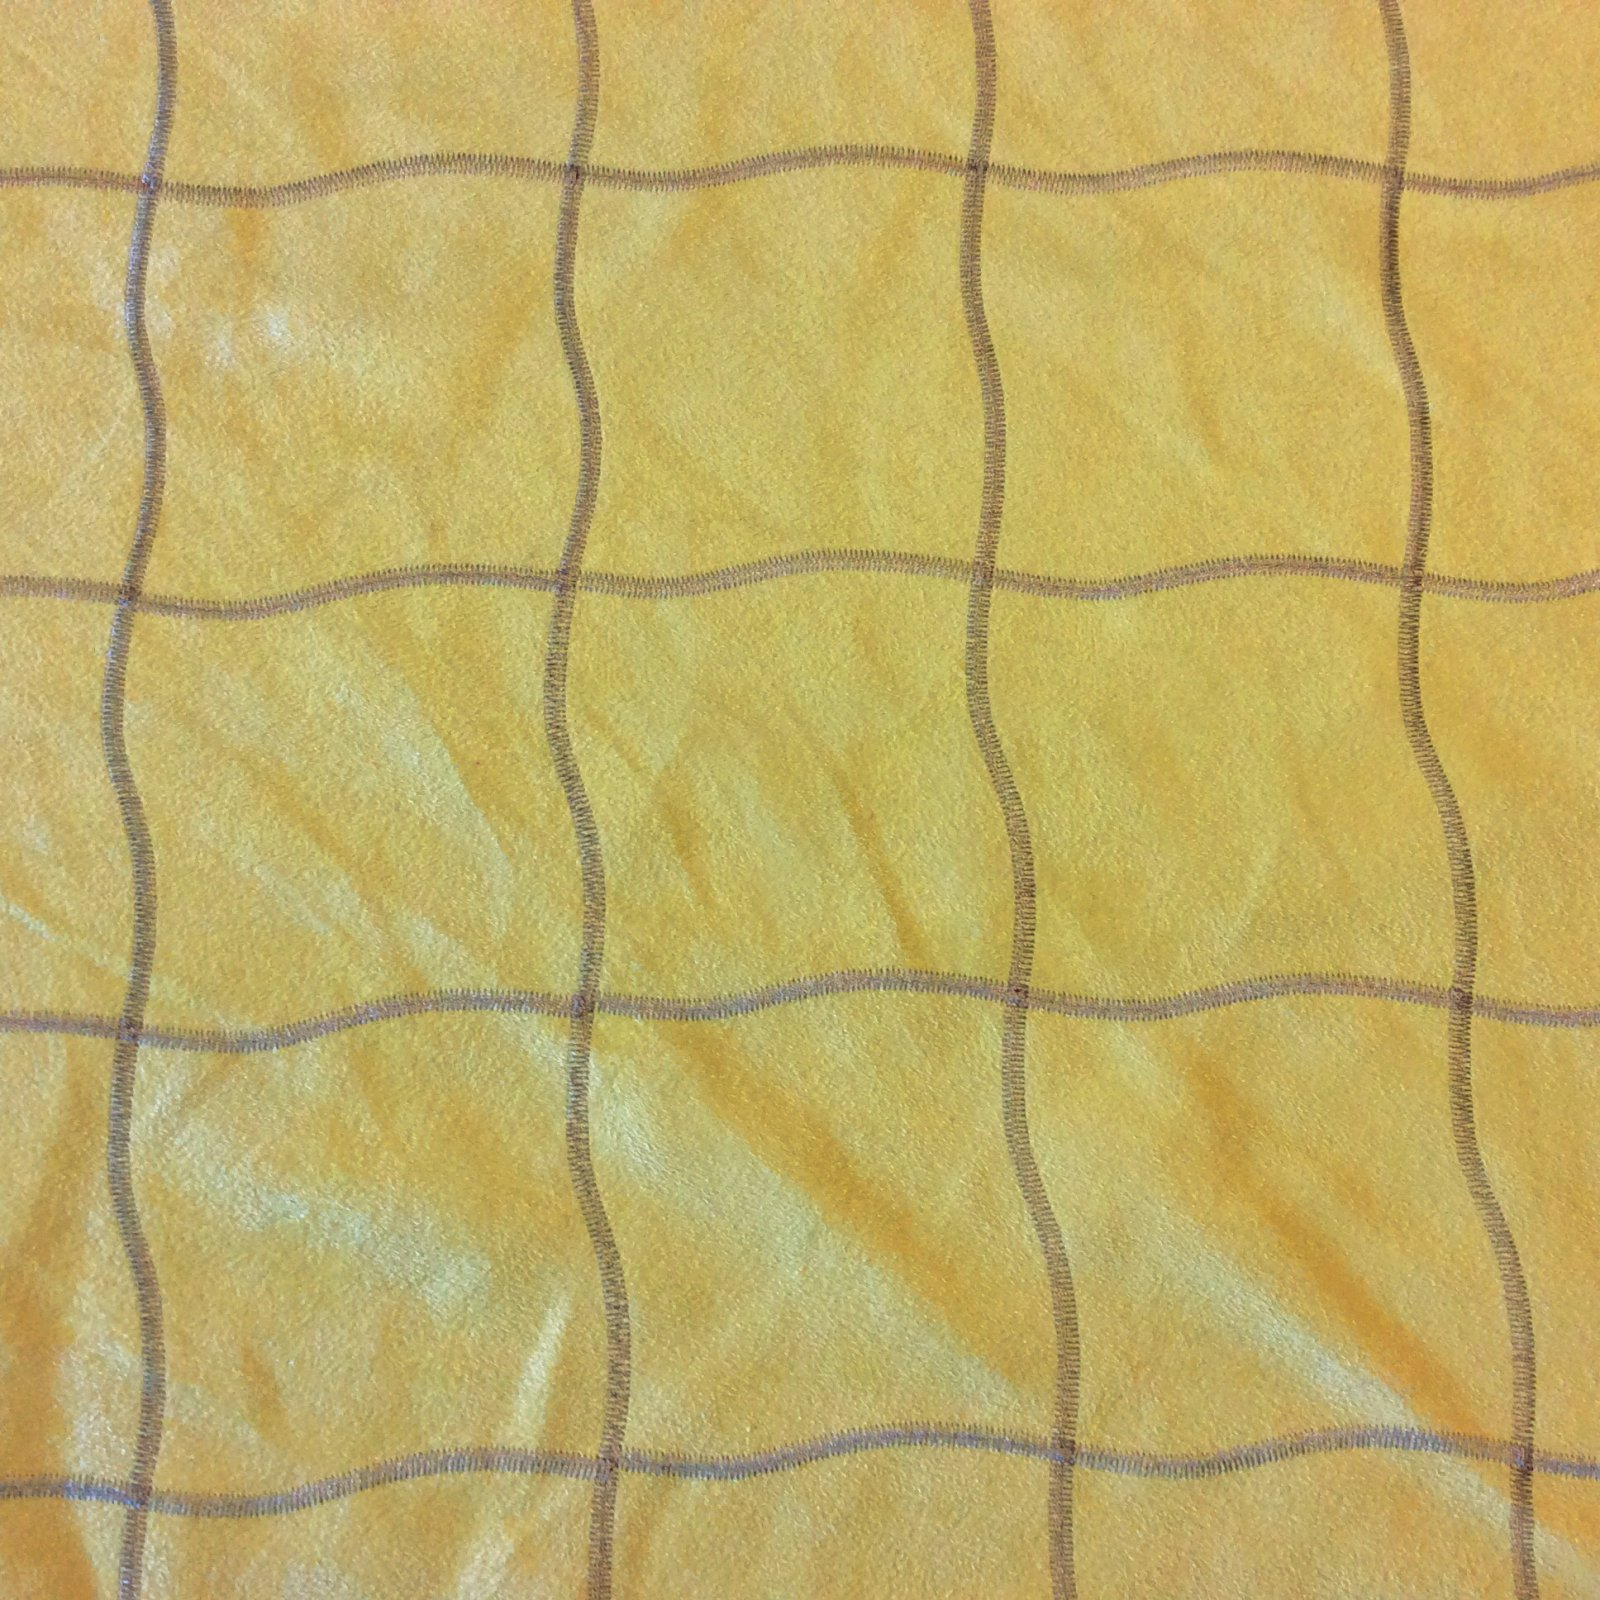 LHD313 Chartreuse Ultrasuede Suede Geo Embroidered Upholstery Home Decor Fabric